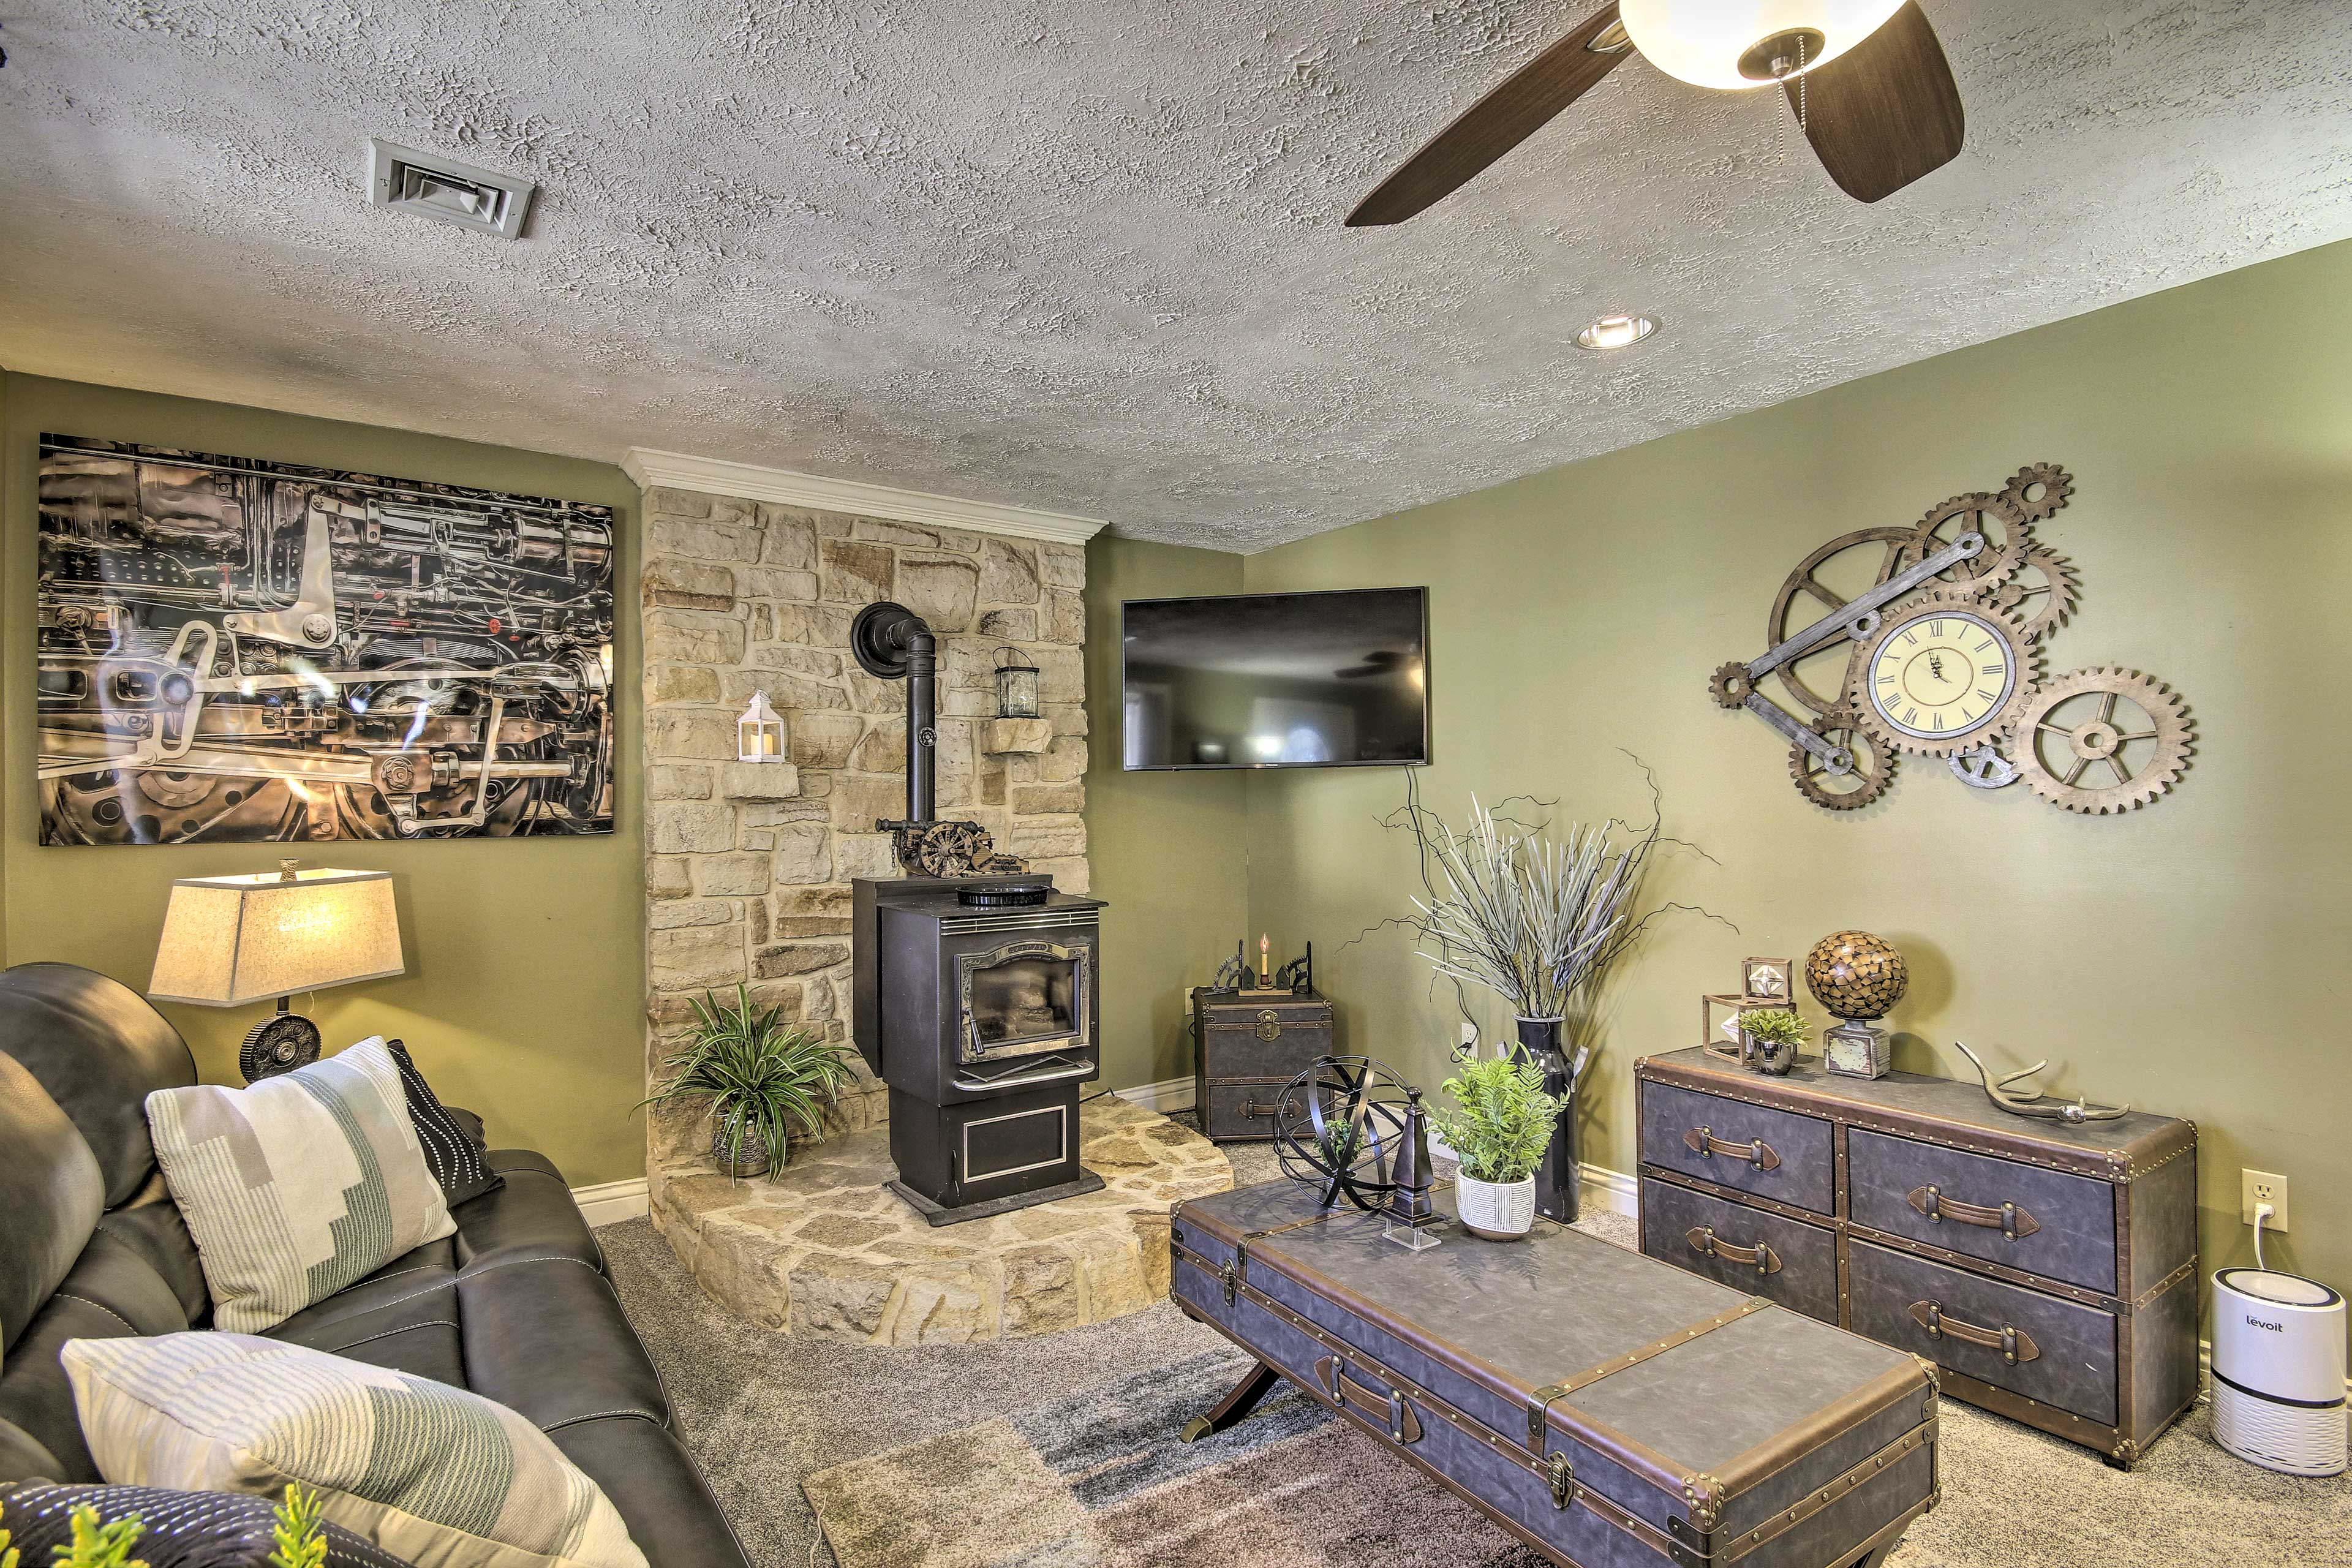 Unwind in the contemporary living space featuring a wood-burning stove.